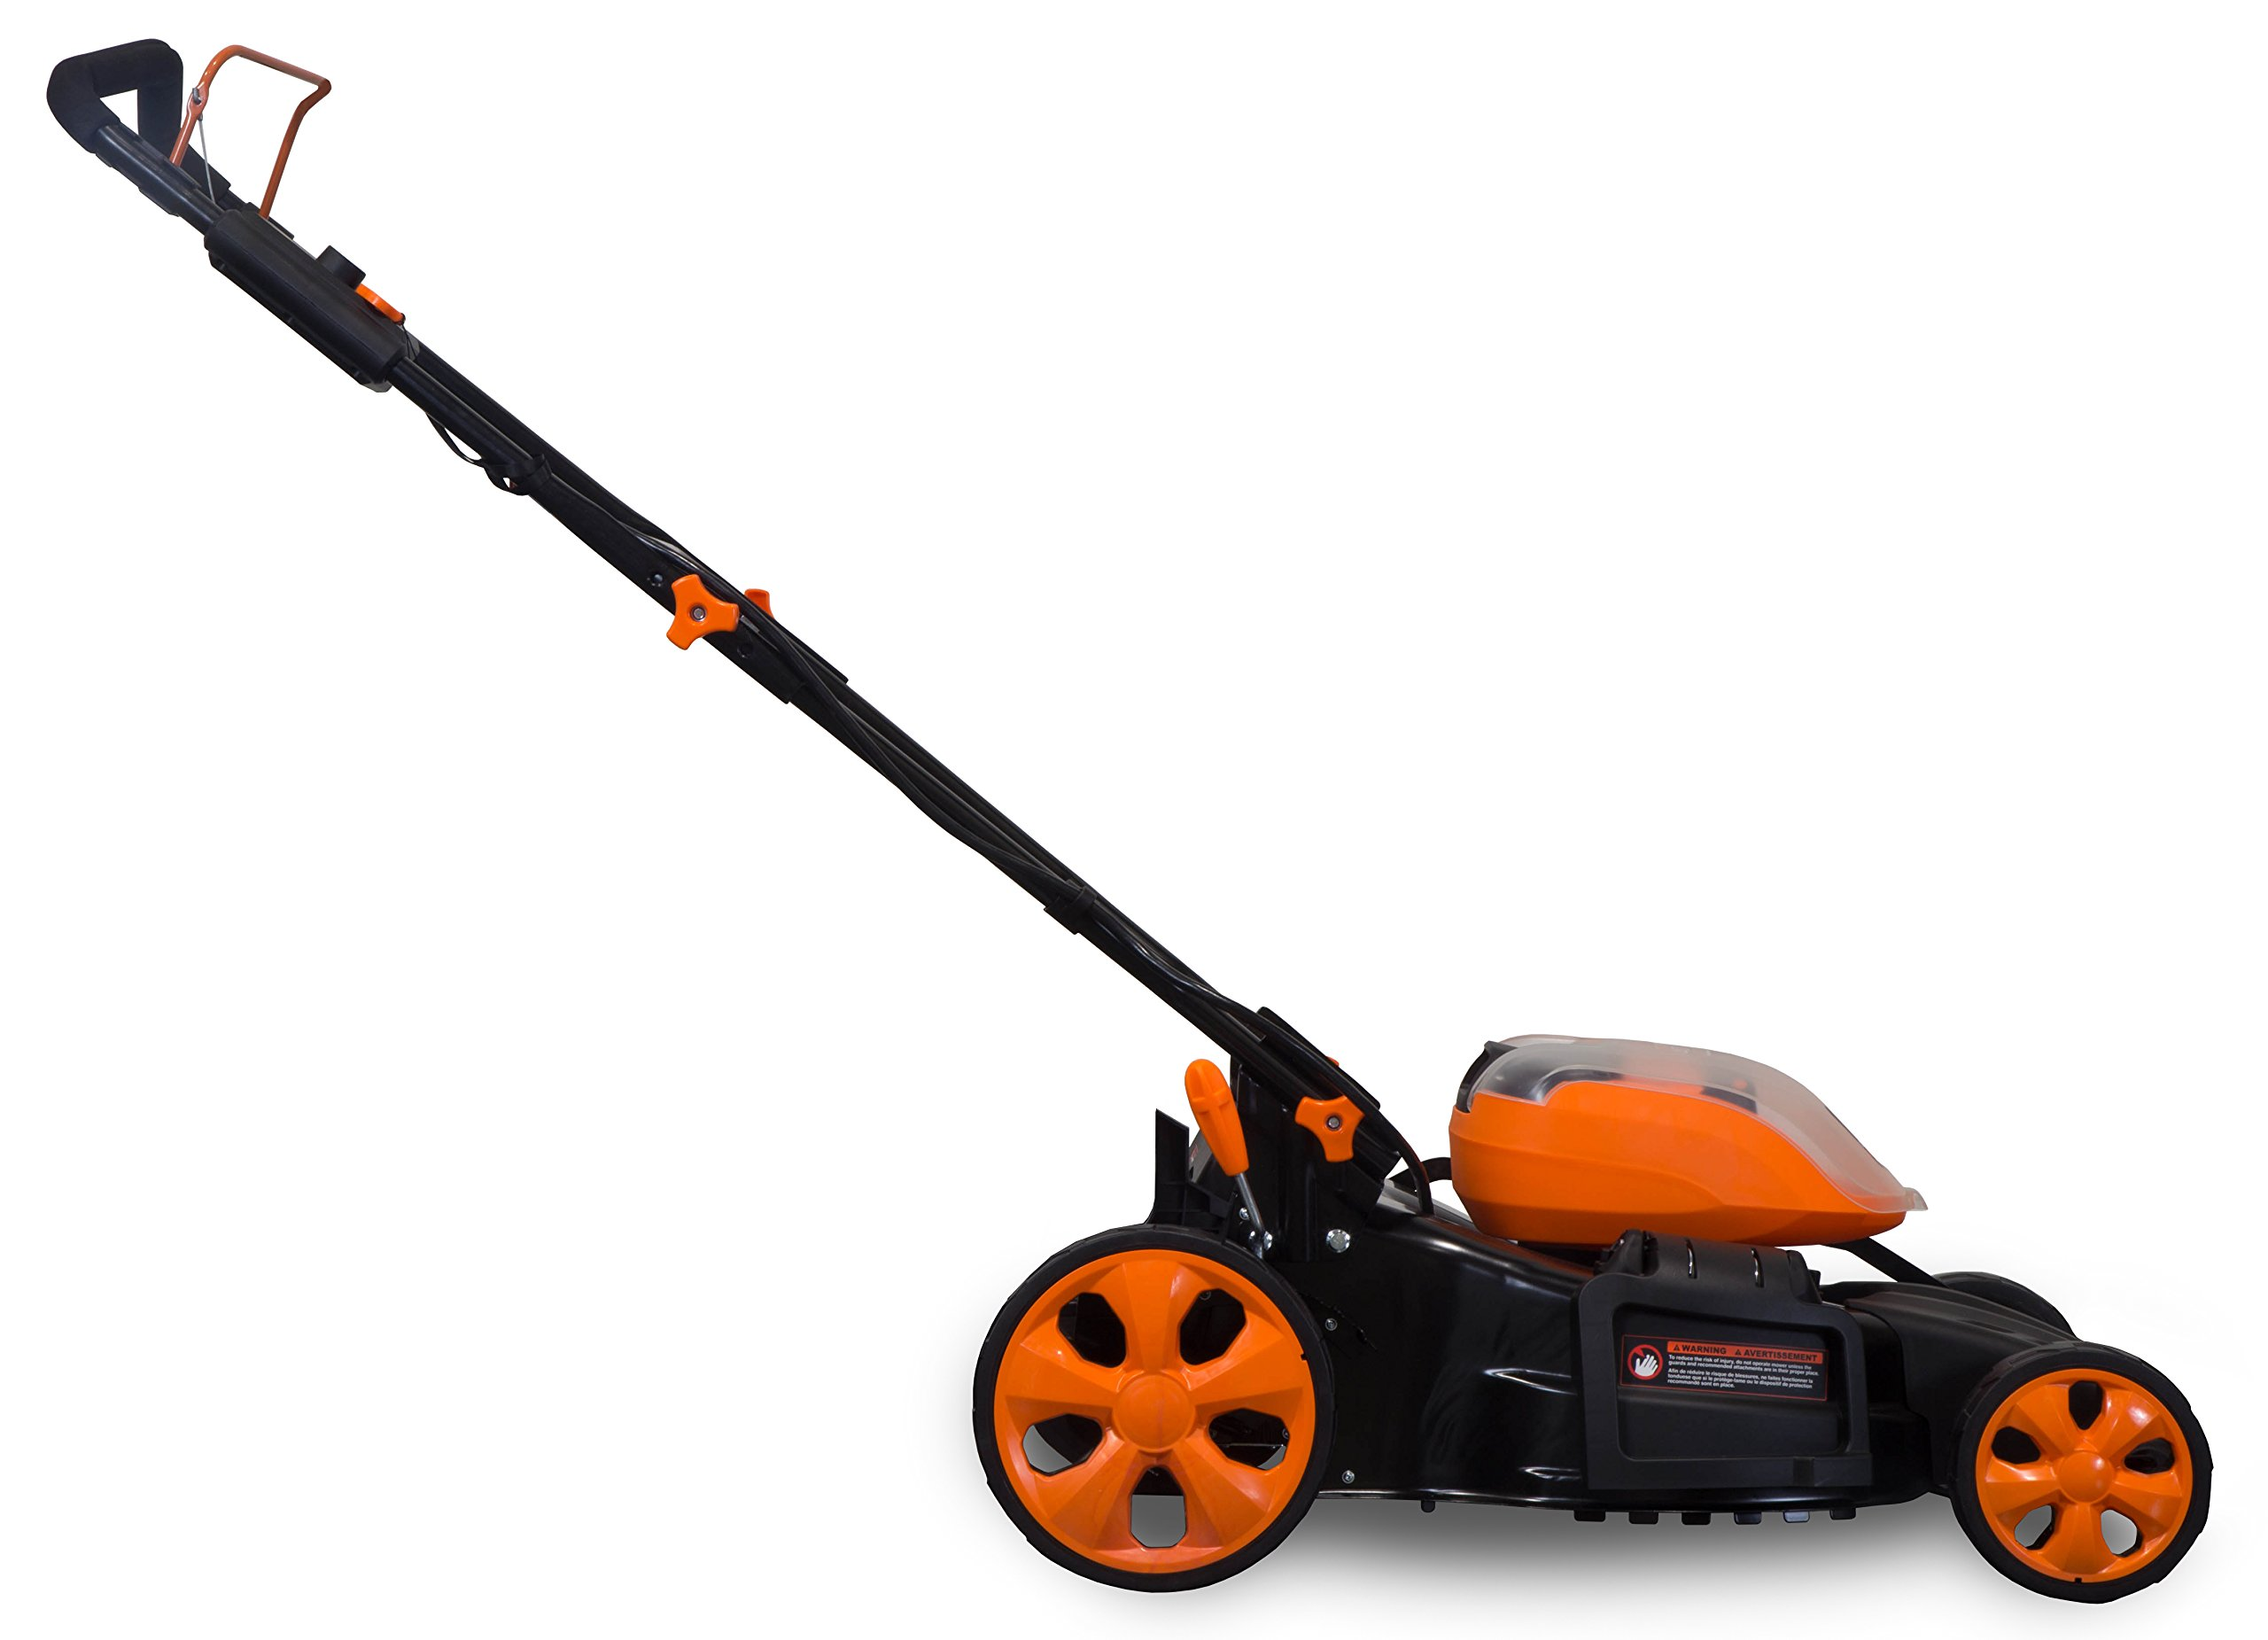 WEN 40439 40V Max Lithium Ion 19-Inch Cordless 3-in-1 Electric Lawn Mower with Two Batteries, 16-Gallon Bag and Charger 3 Includes one 4 amp-hour battery, one 2 amp-hour battery, one 16-gallon bag, one charger, and a two-year warranty Versatile 19-inch steel deck allows users to mulch, bag or use the side discharge door Adjust the cutting height between six different stops ranging from 1.5 to 4 inches